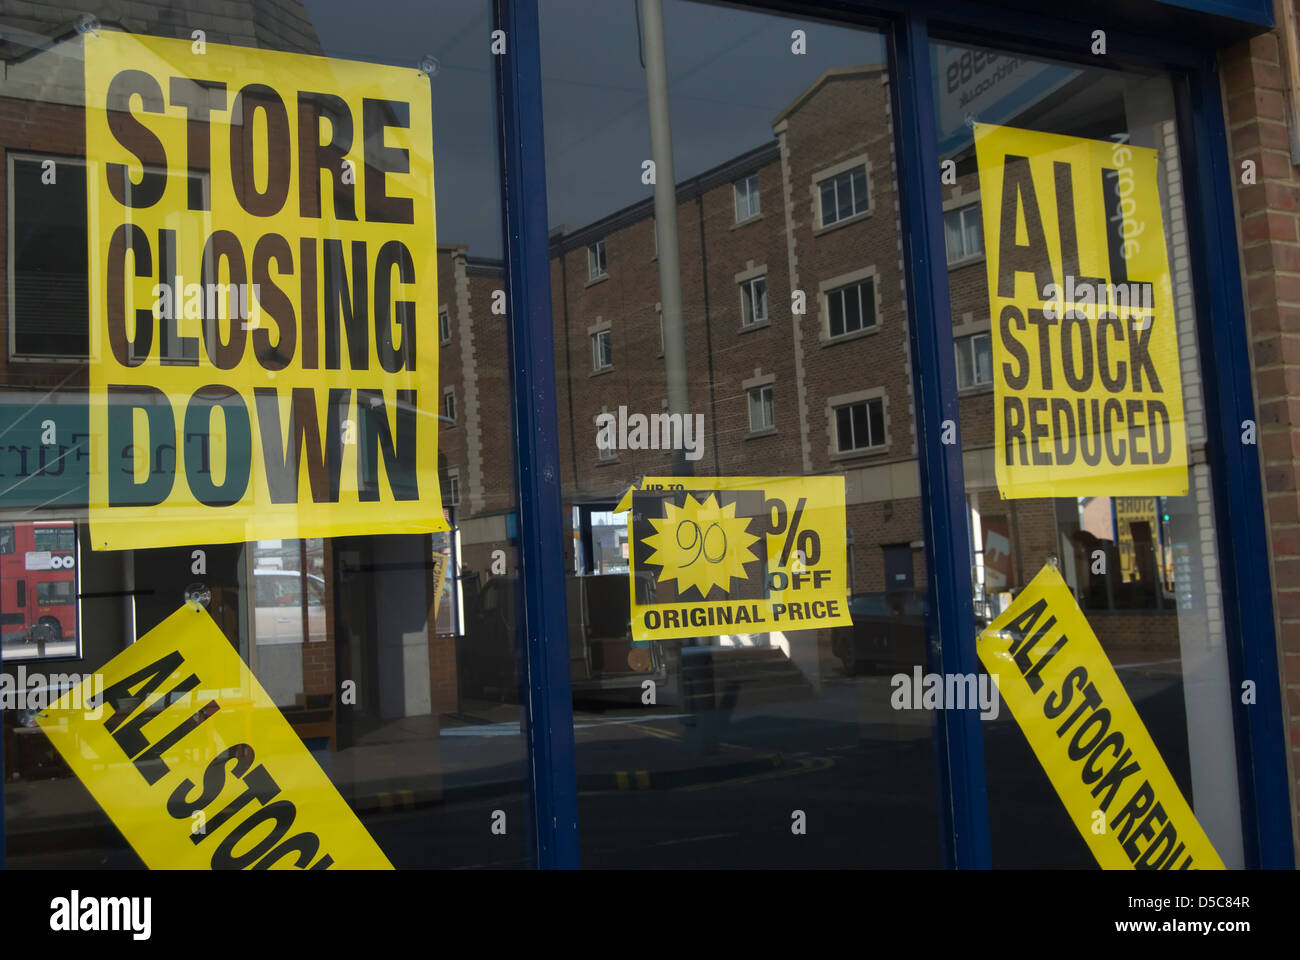 store closing down posters in shop window, kingston upon thames, surrey, england - Stock Image